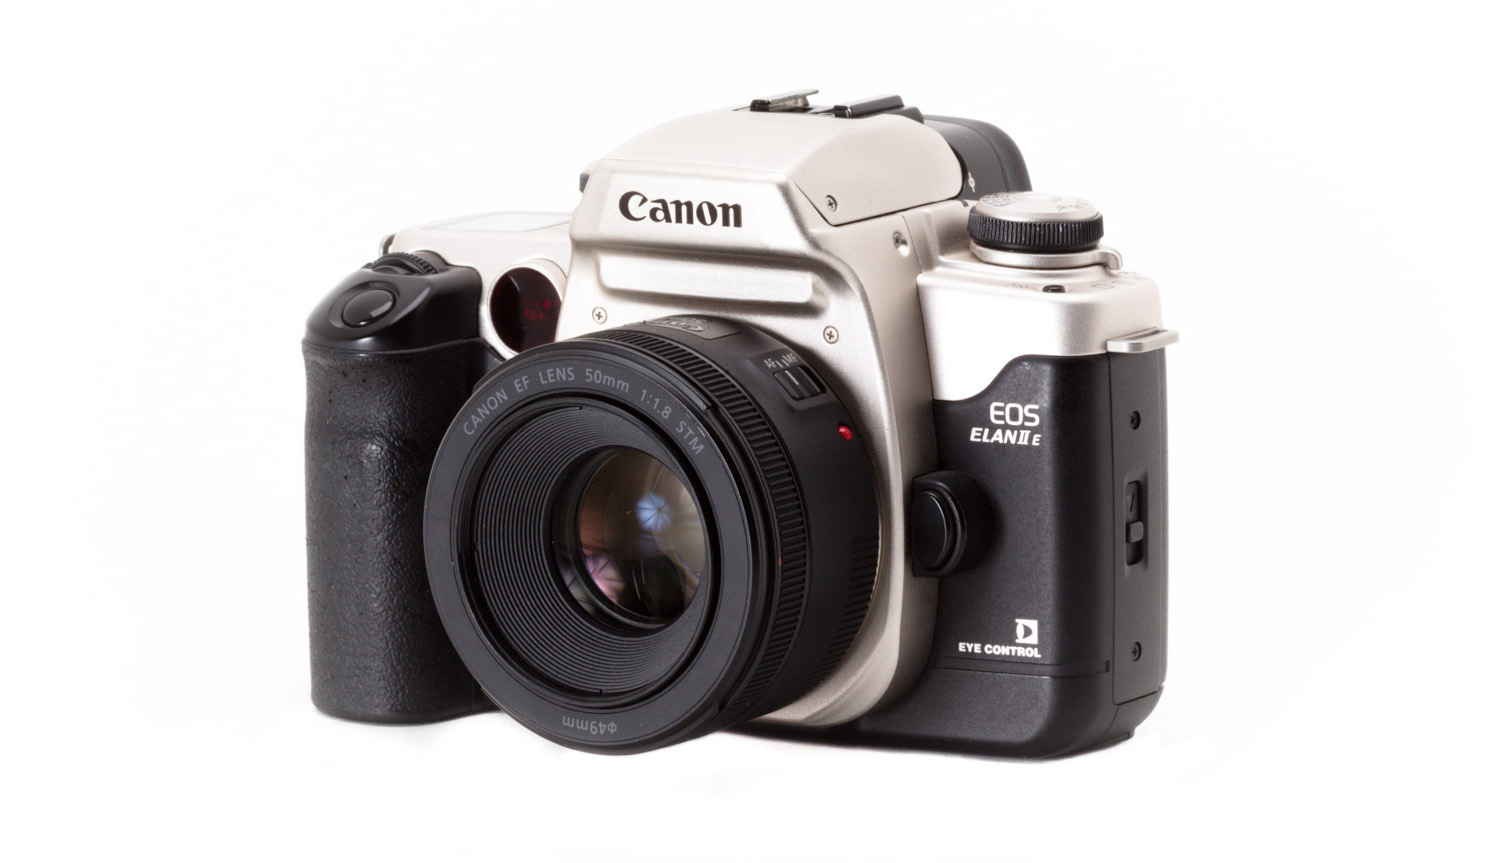 The Canon EOS Elan IIE, introduced in 1995, had a 3-point autofocus system  with eye-controlled focus.